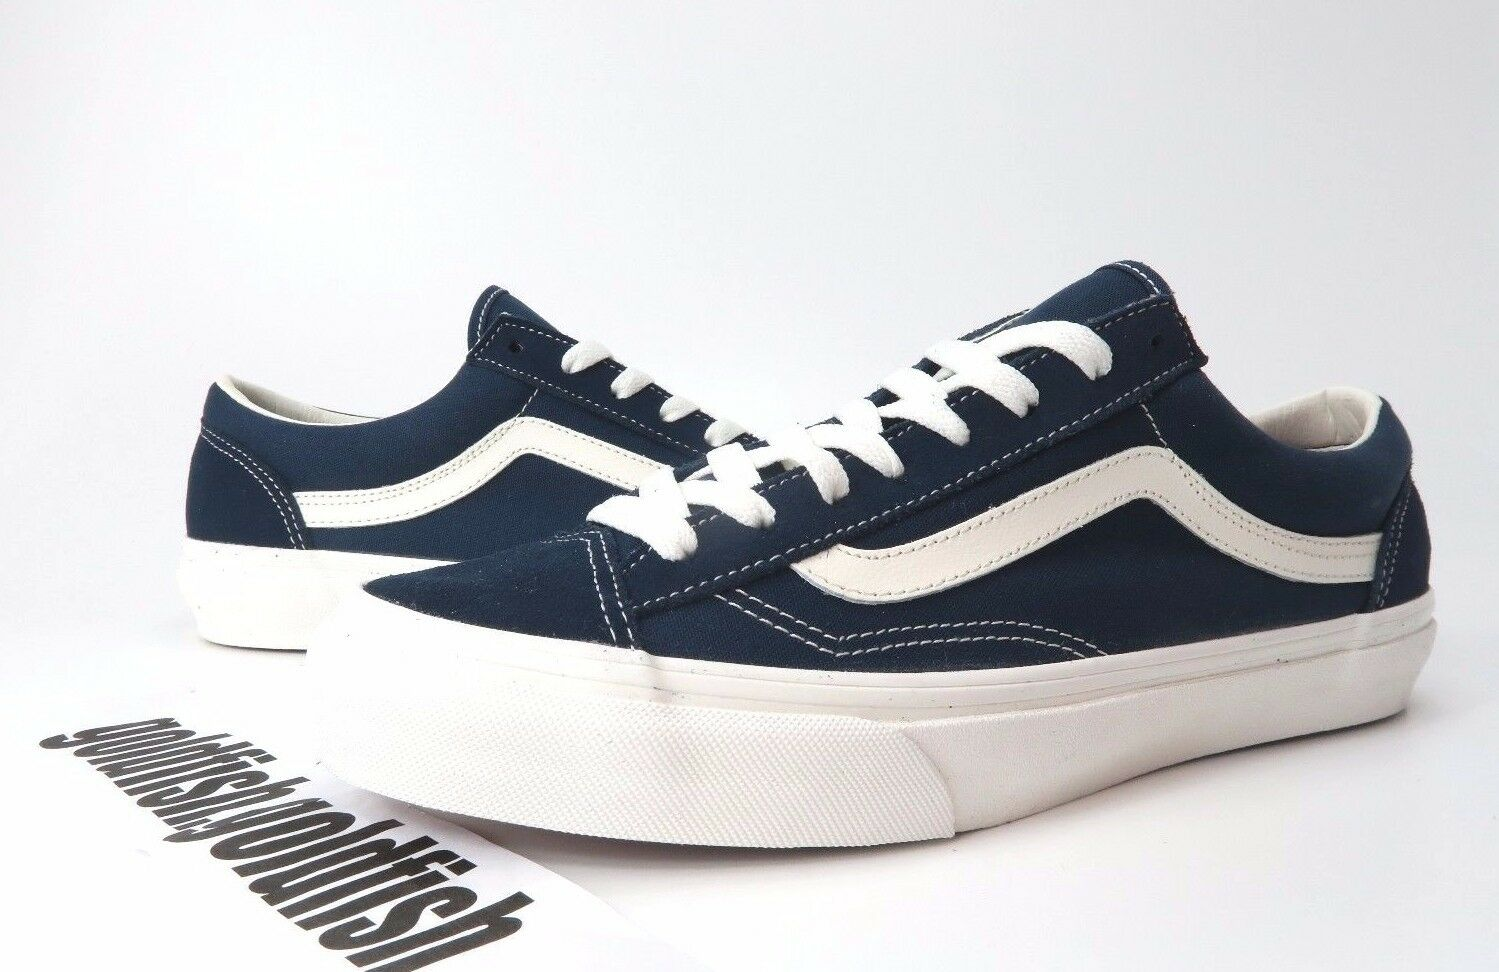 DS VANS OLD OLD OLD SKOOL STYLE 36 DRESS BLUES MARSHMALLOW NAVY ASIA RELEASE VN0A3DZ3RFL 9411c0